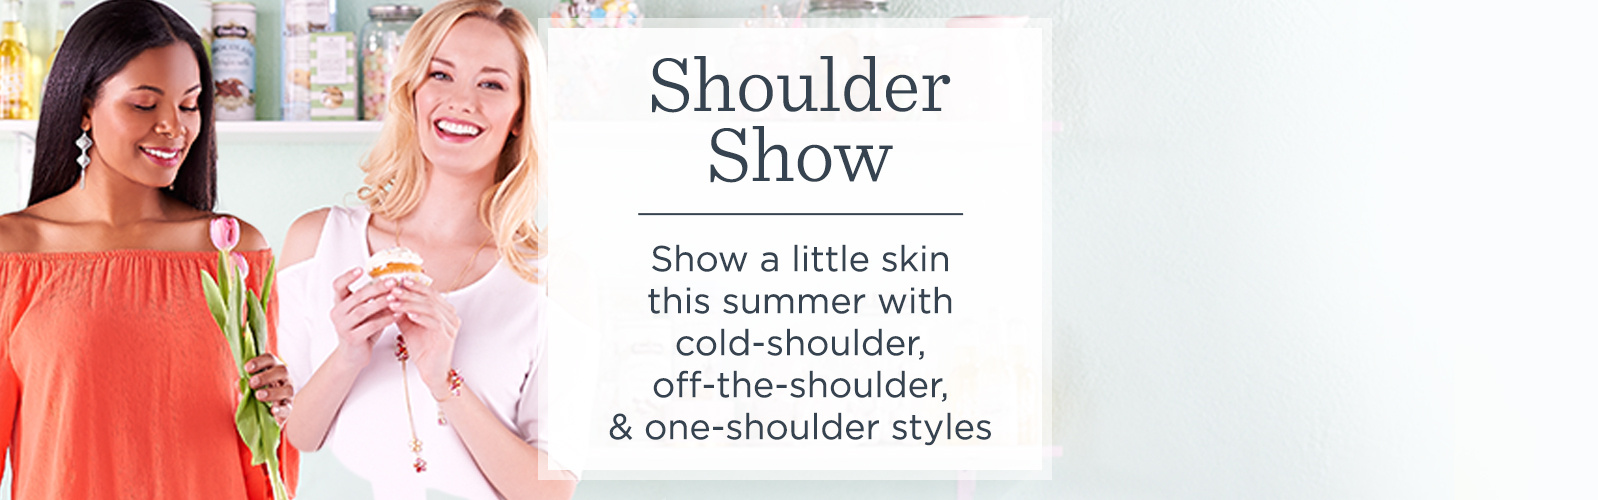 Shoulder Show.  Show a little skin this summer with cold-shoulder, off-the-shoulder, & one-shoulder styles